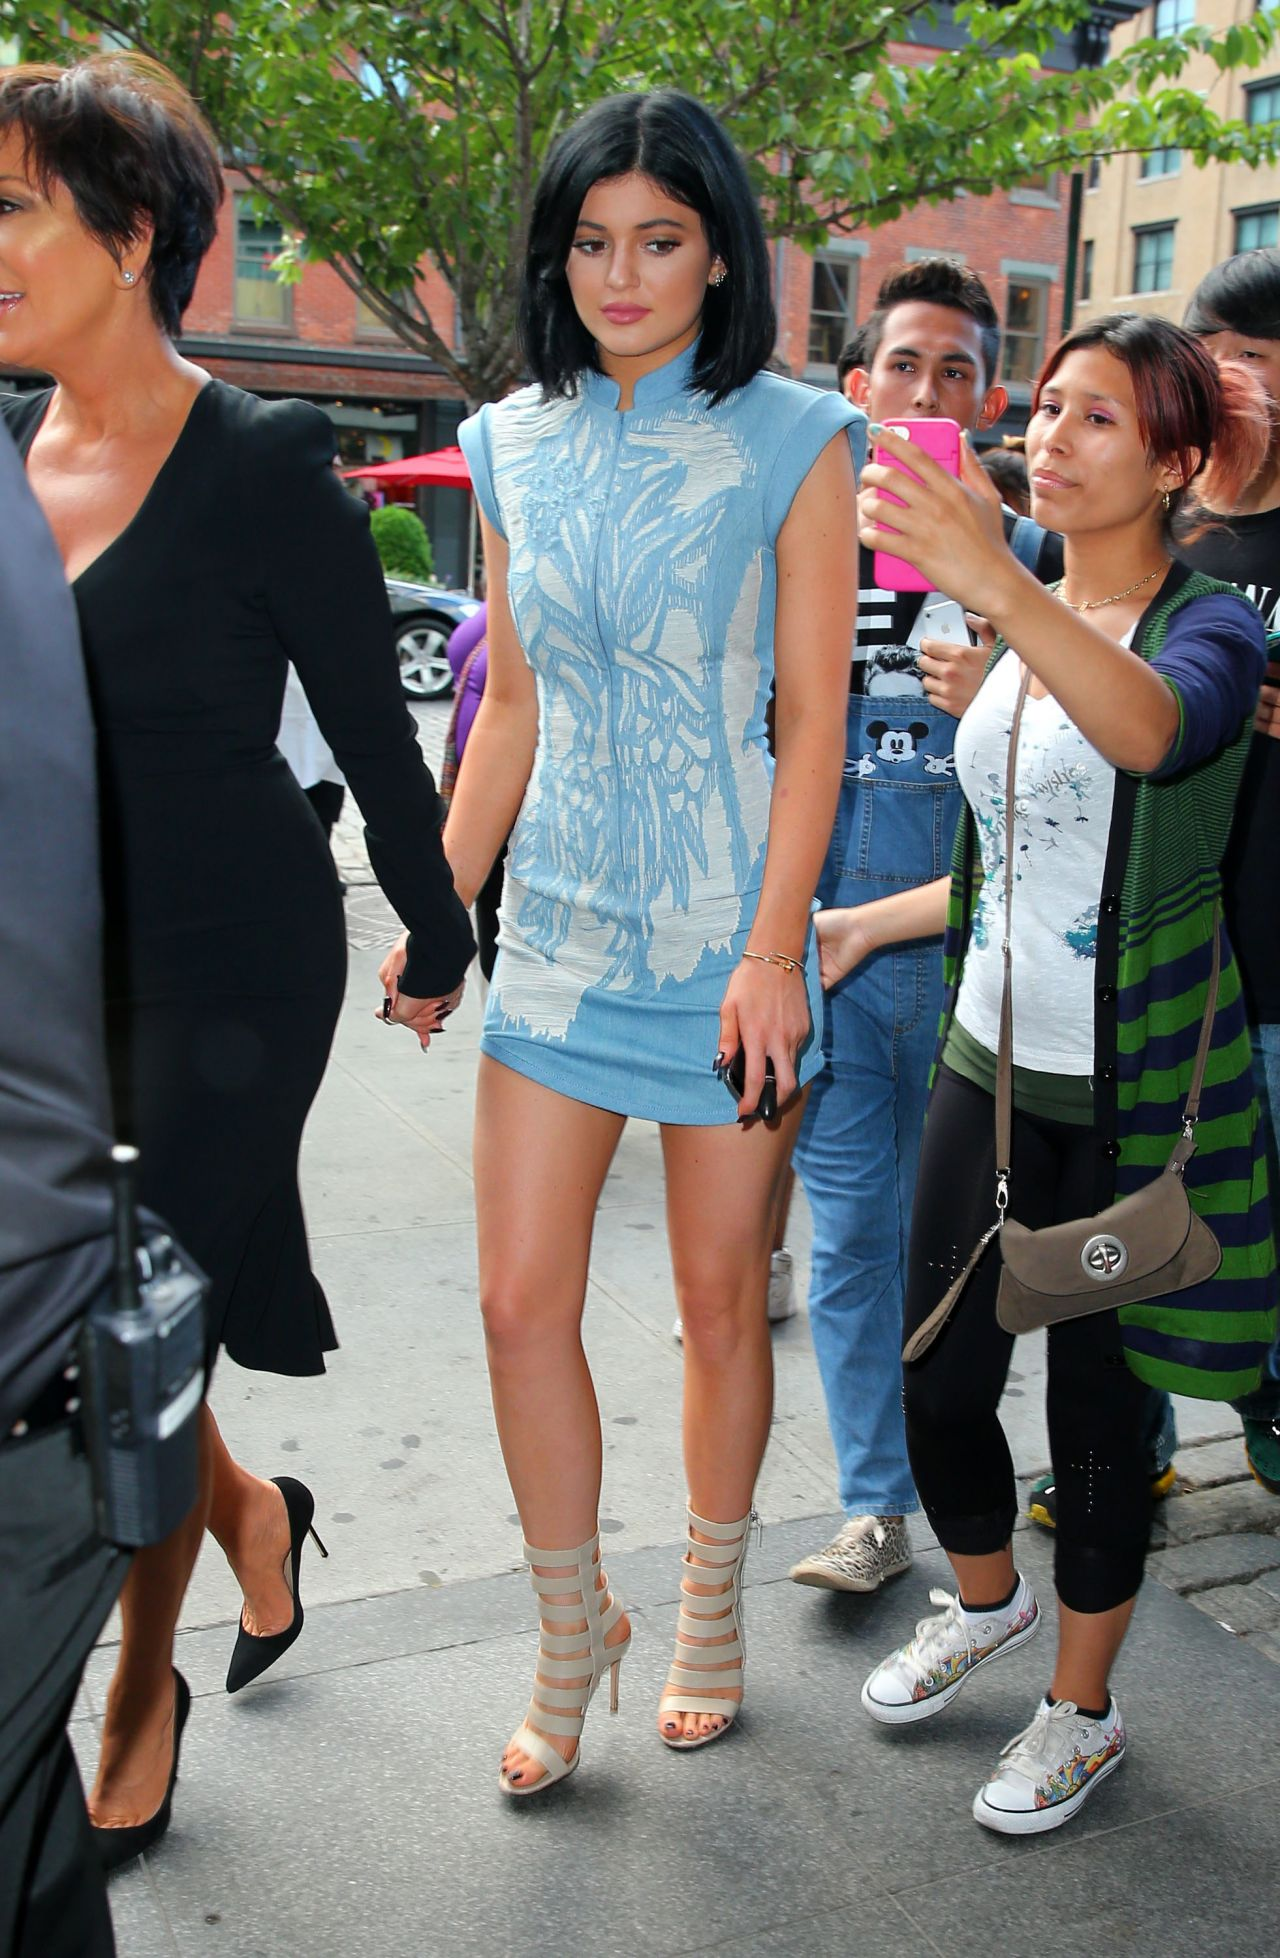 Kylie jenner leaving her hotel in nyc